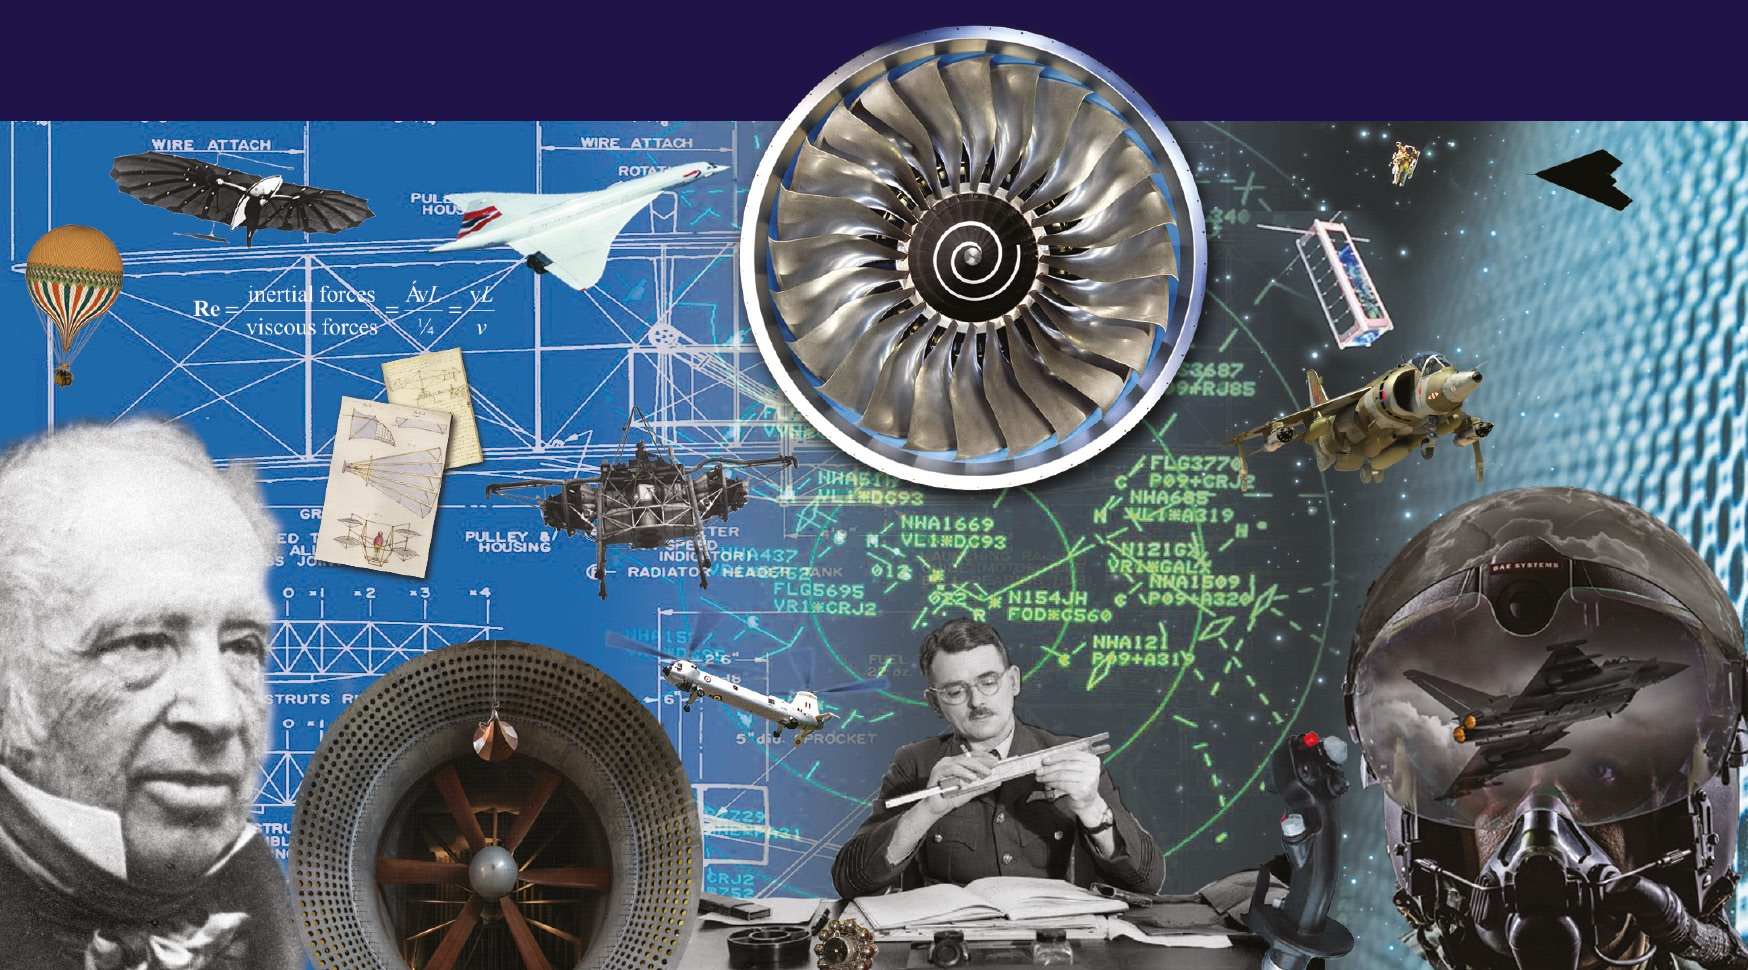 150th Anniversary Issue of The Aeronautical Journal